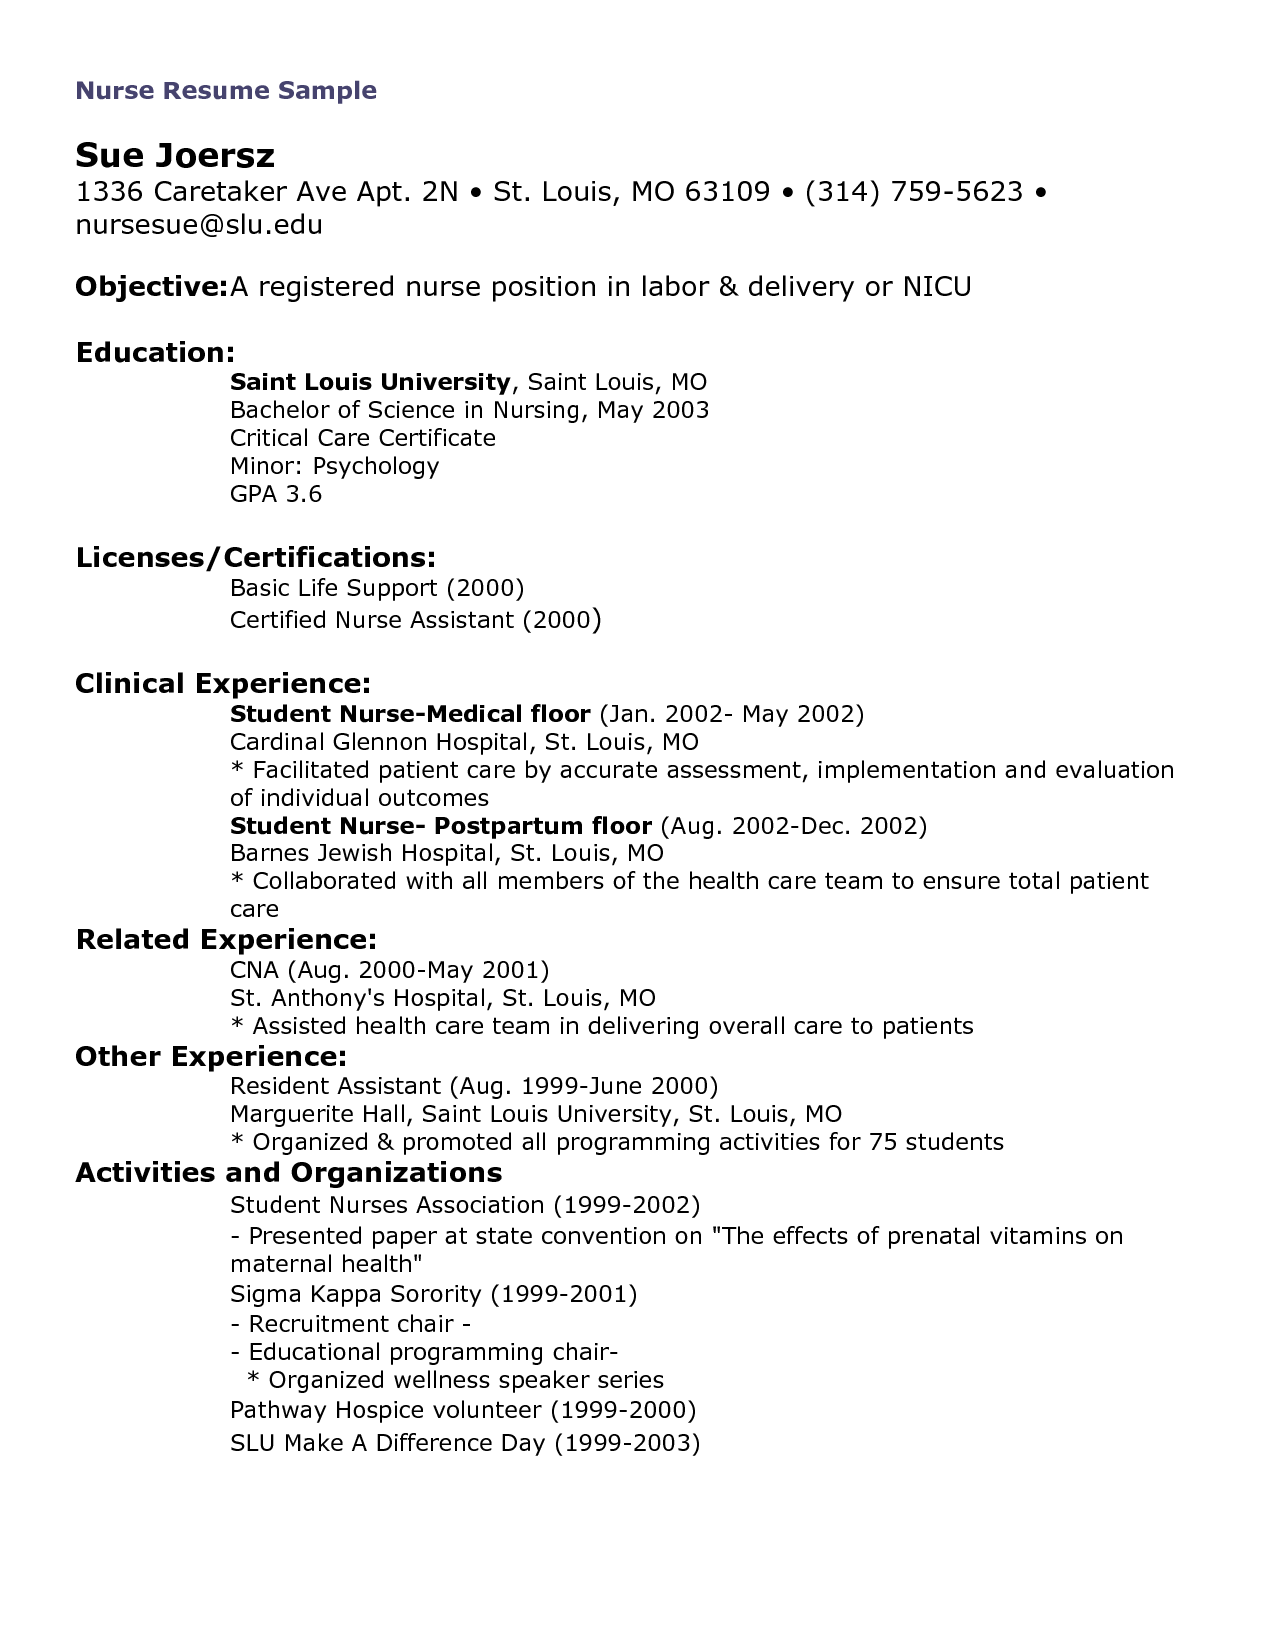 Nicu Nurse Resume Resume For Heals Application Letter Nurse Trainee Sample